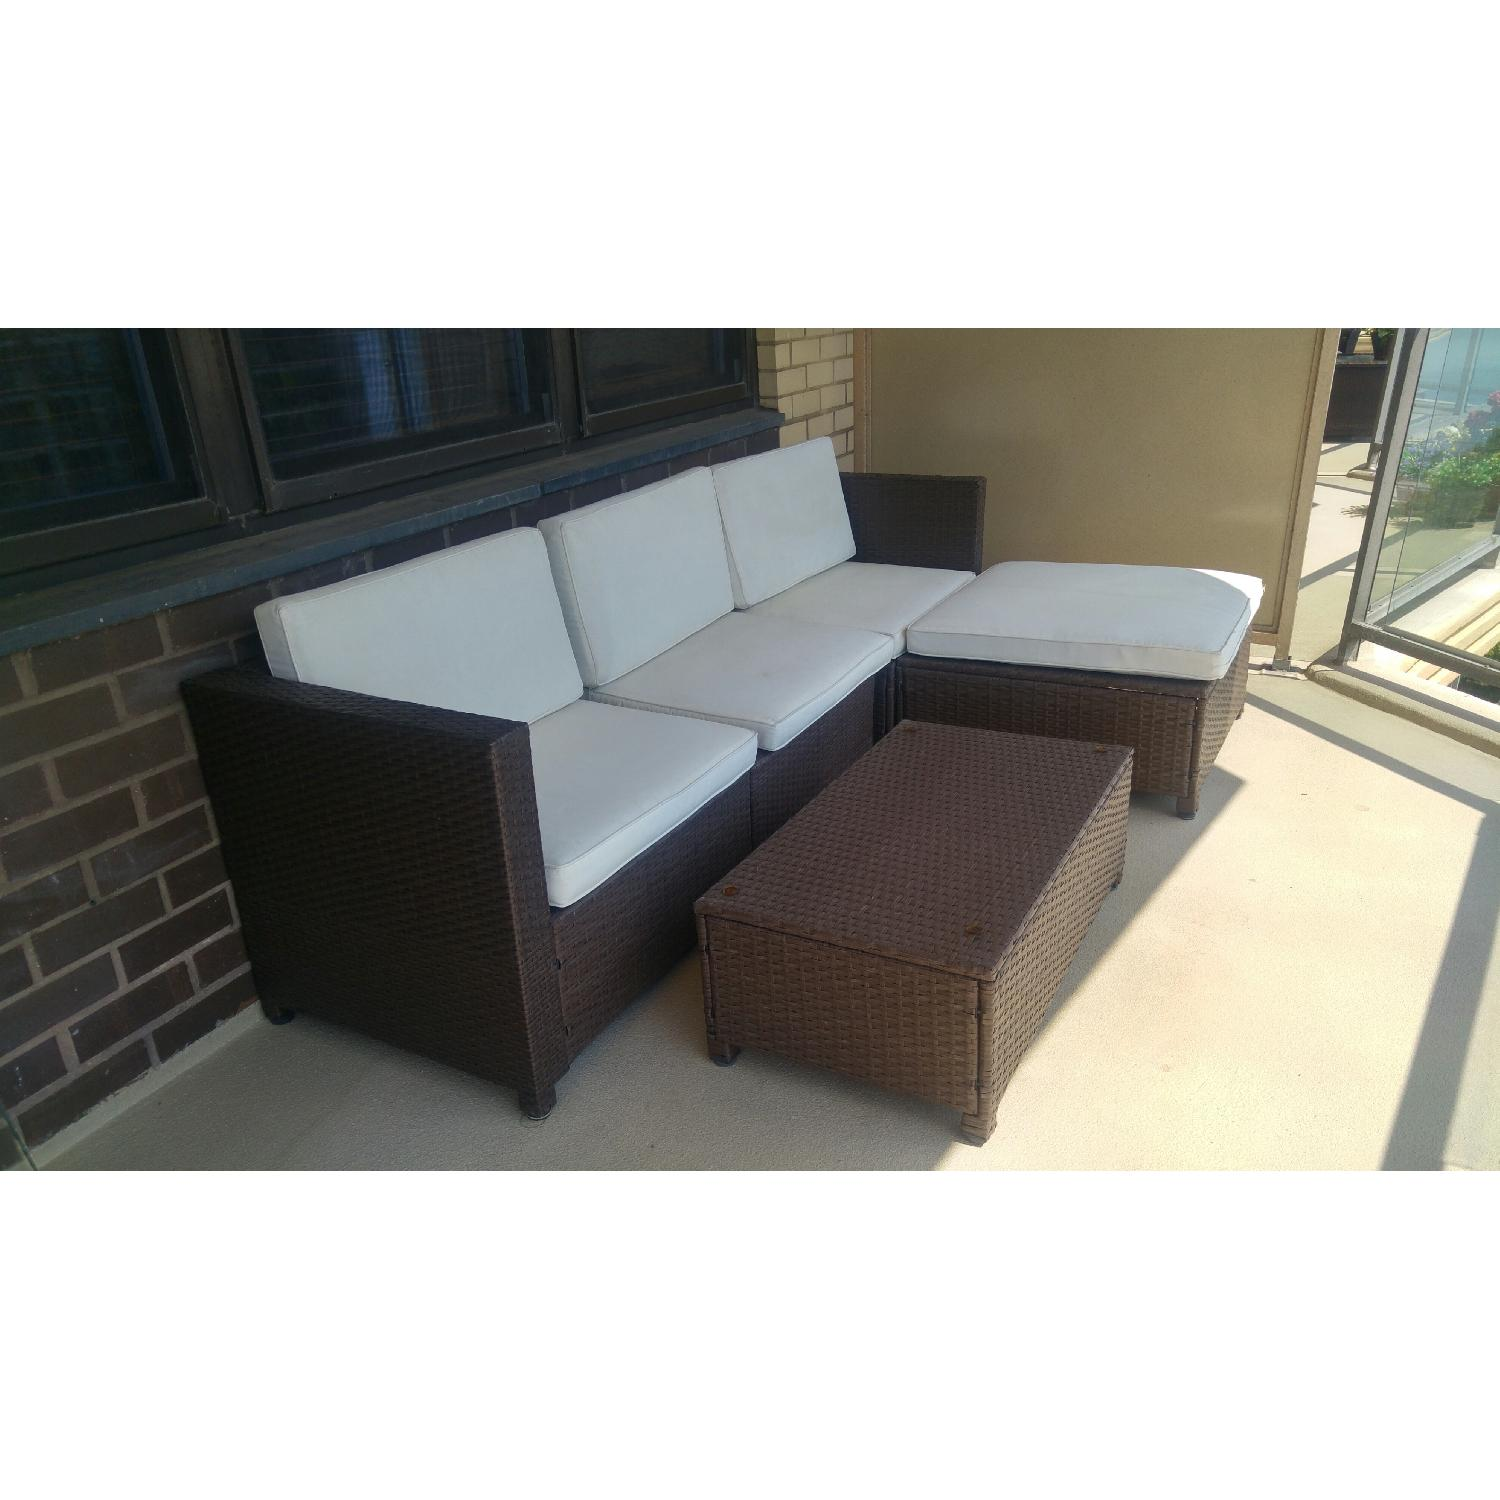 Patio/Terrace Wicker 3-Piece Sectional Sofa w/ Table